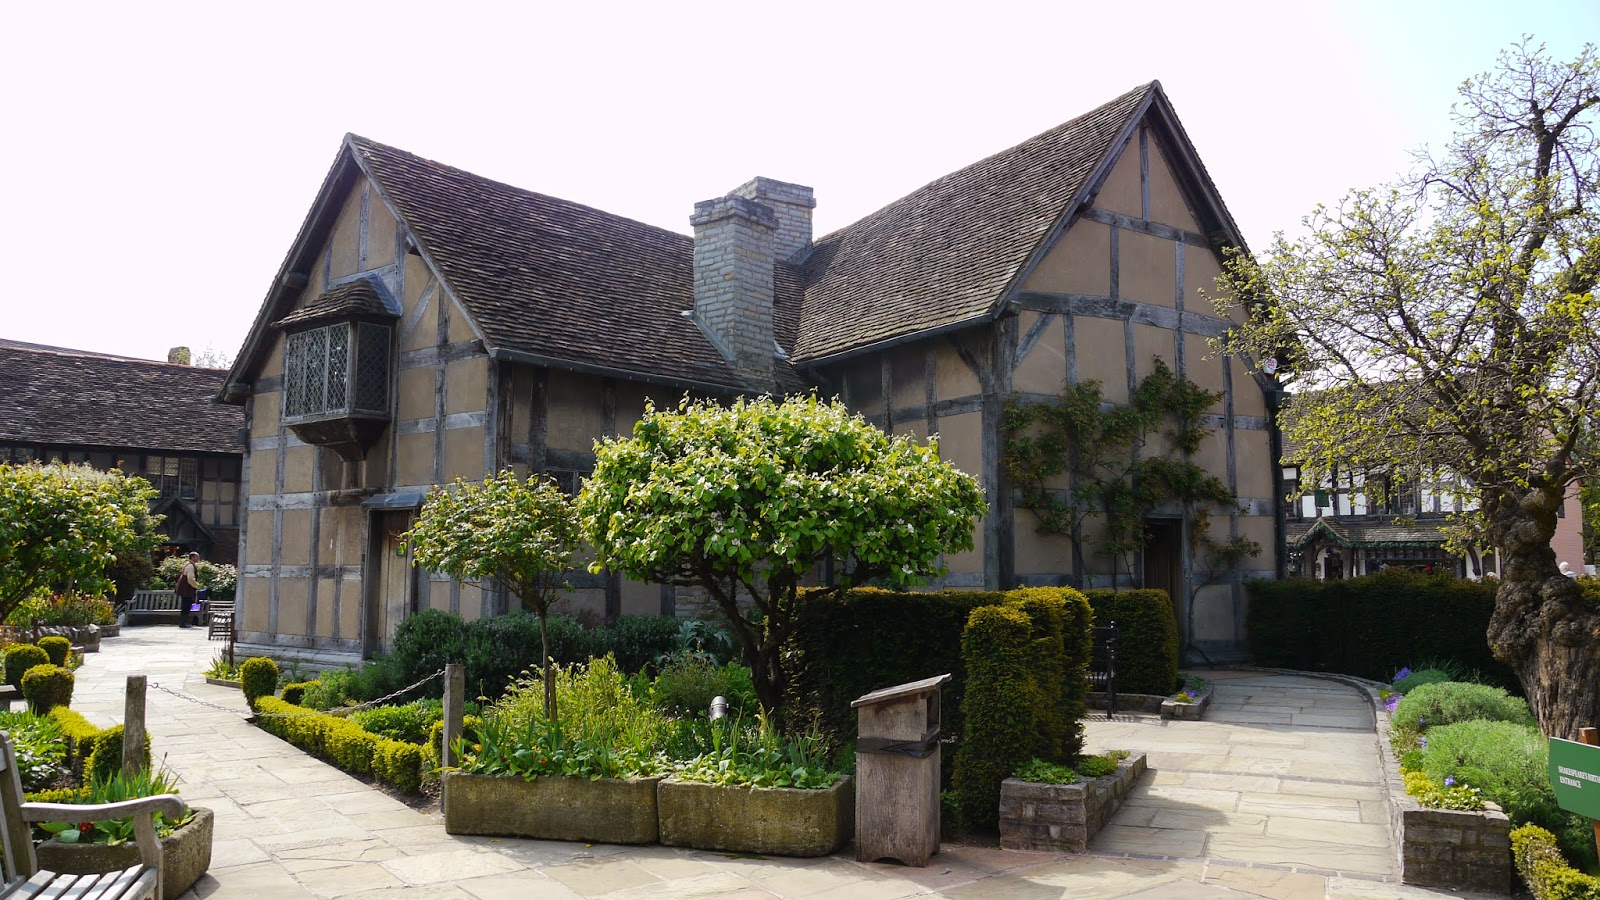 shakespeare's home, stratford upon avon, uk